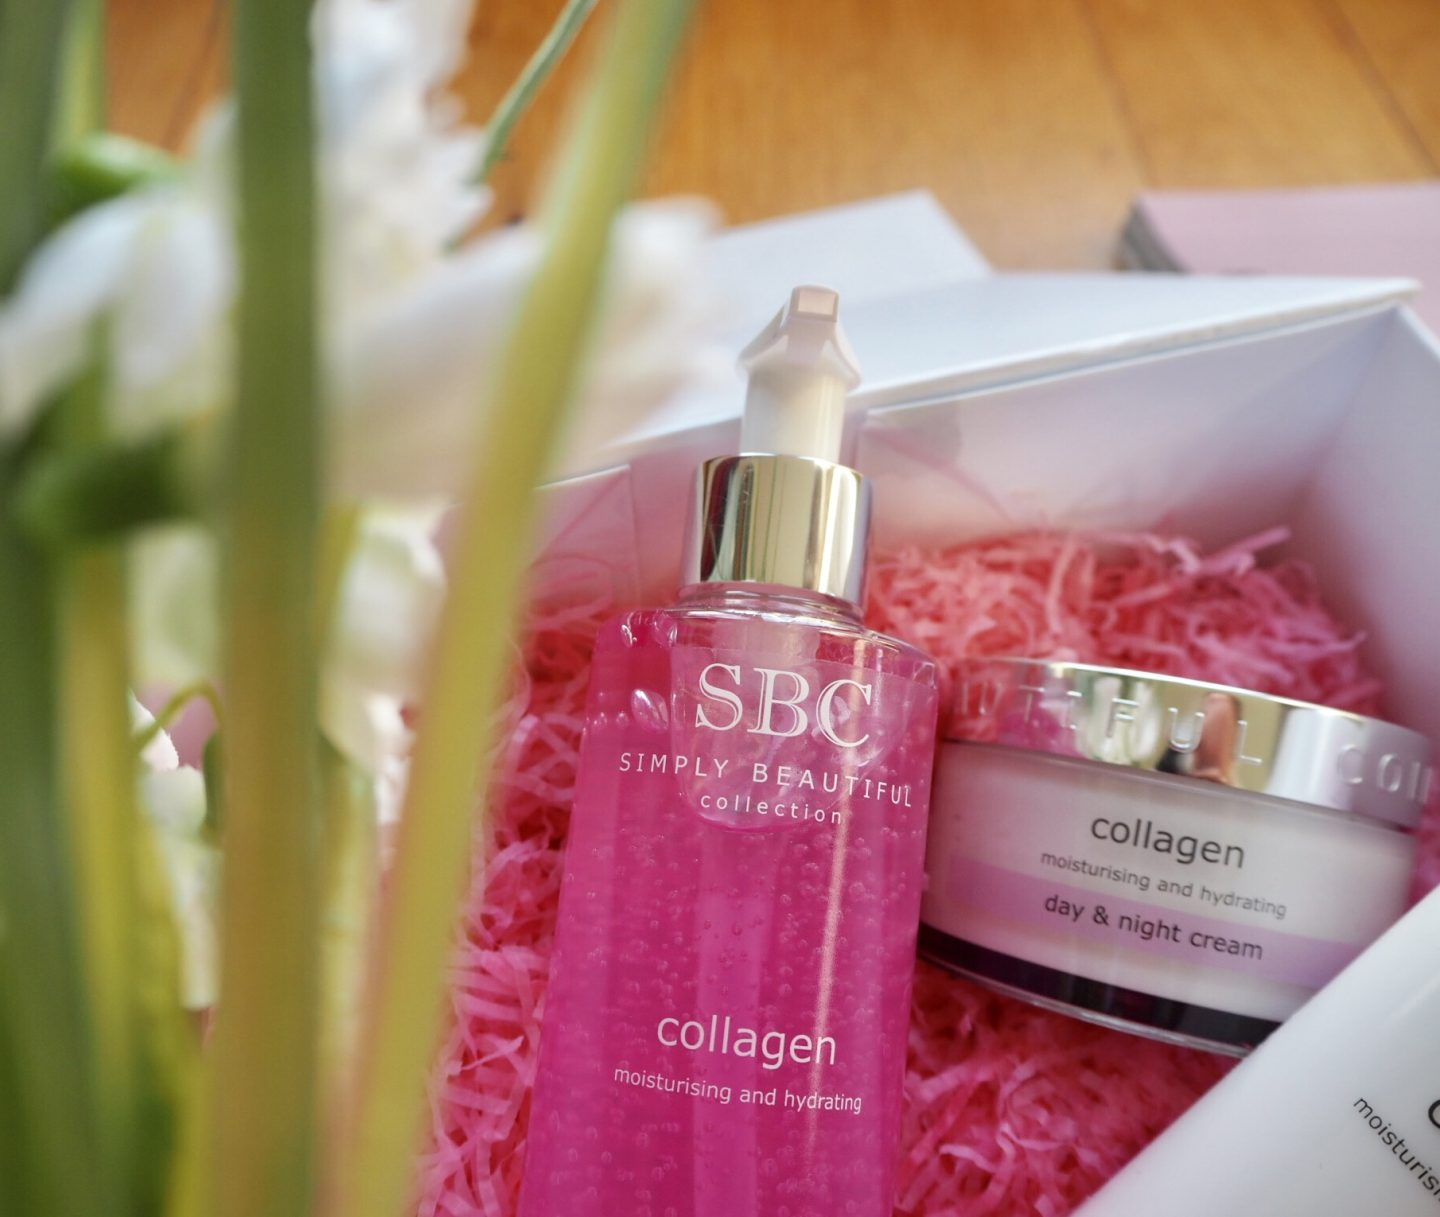 SBC collagen skincare products